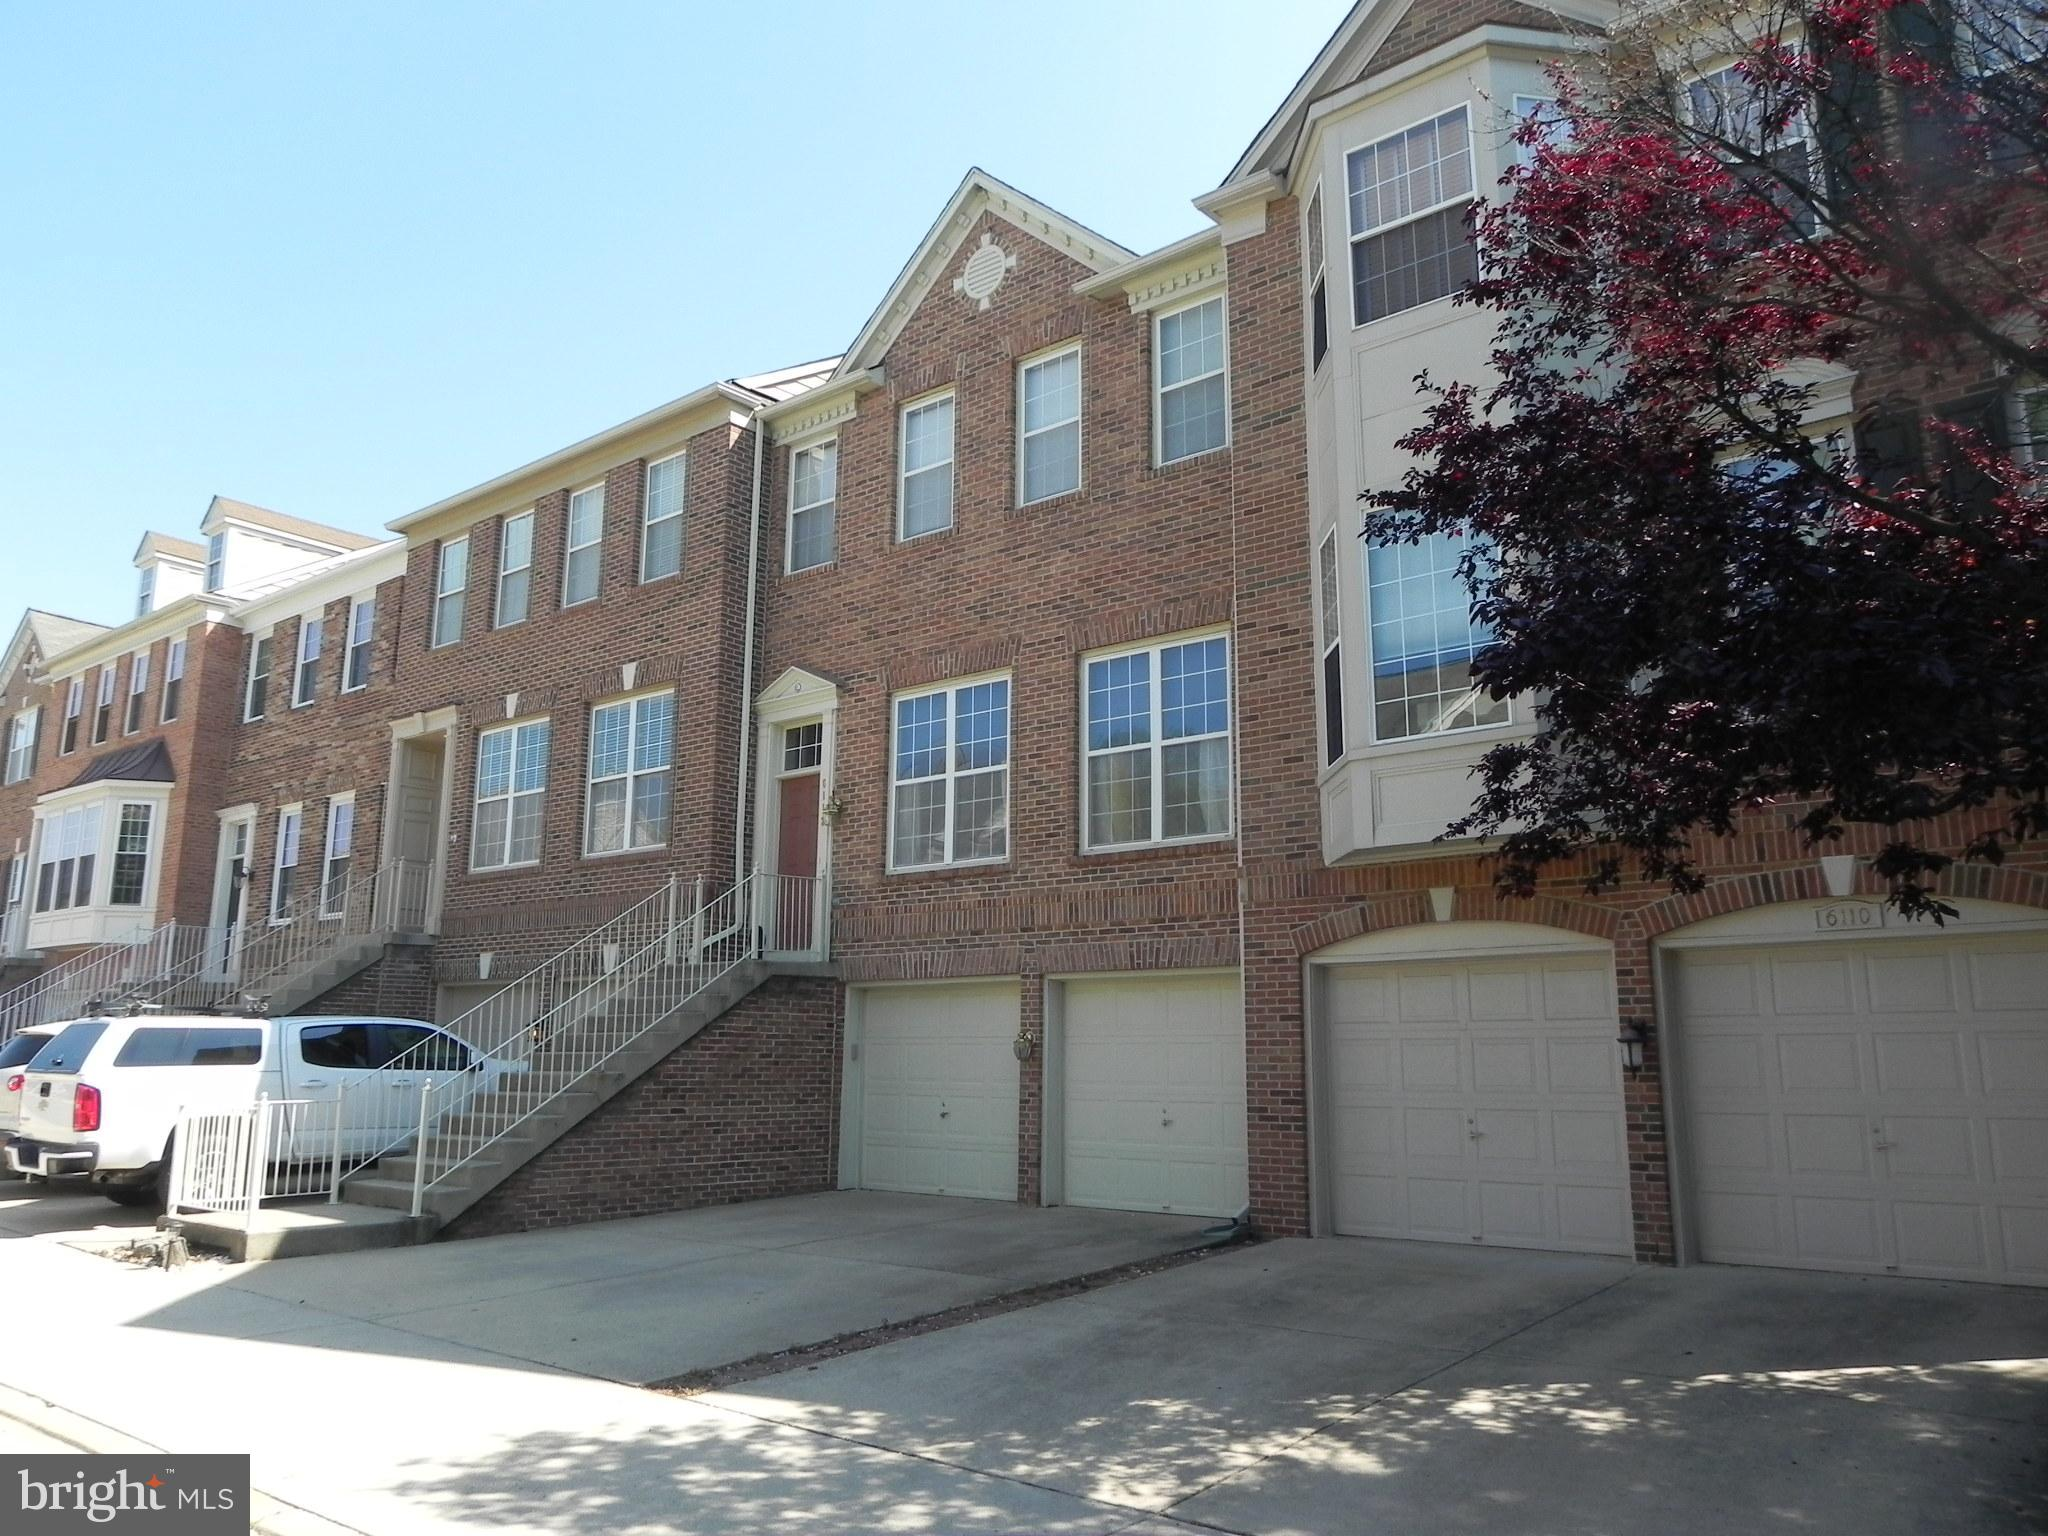 Large 3 bedroom 3.5 bath townhouse with great out door living spaces.  Huge deck, Koi pond with water fall, patio, 2 car garage, very nice home available mid August.  Please remove shoes while showing and call for application instructions and showing instructions.